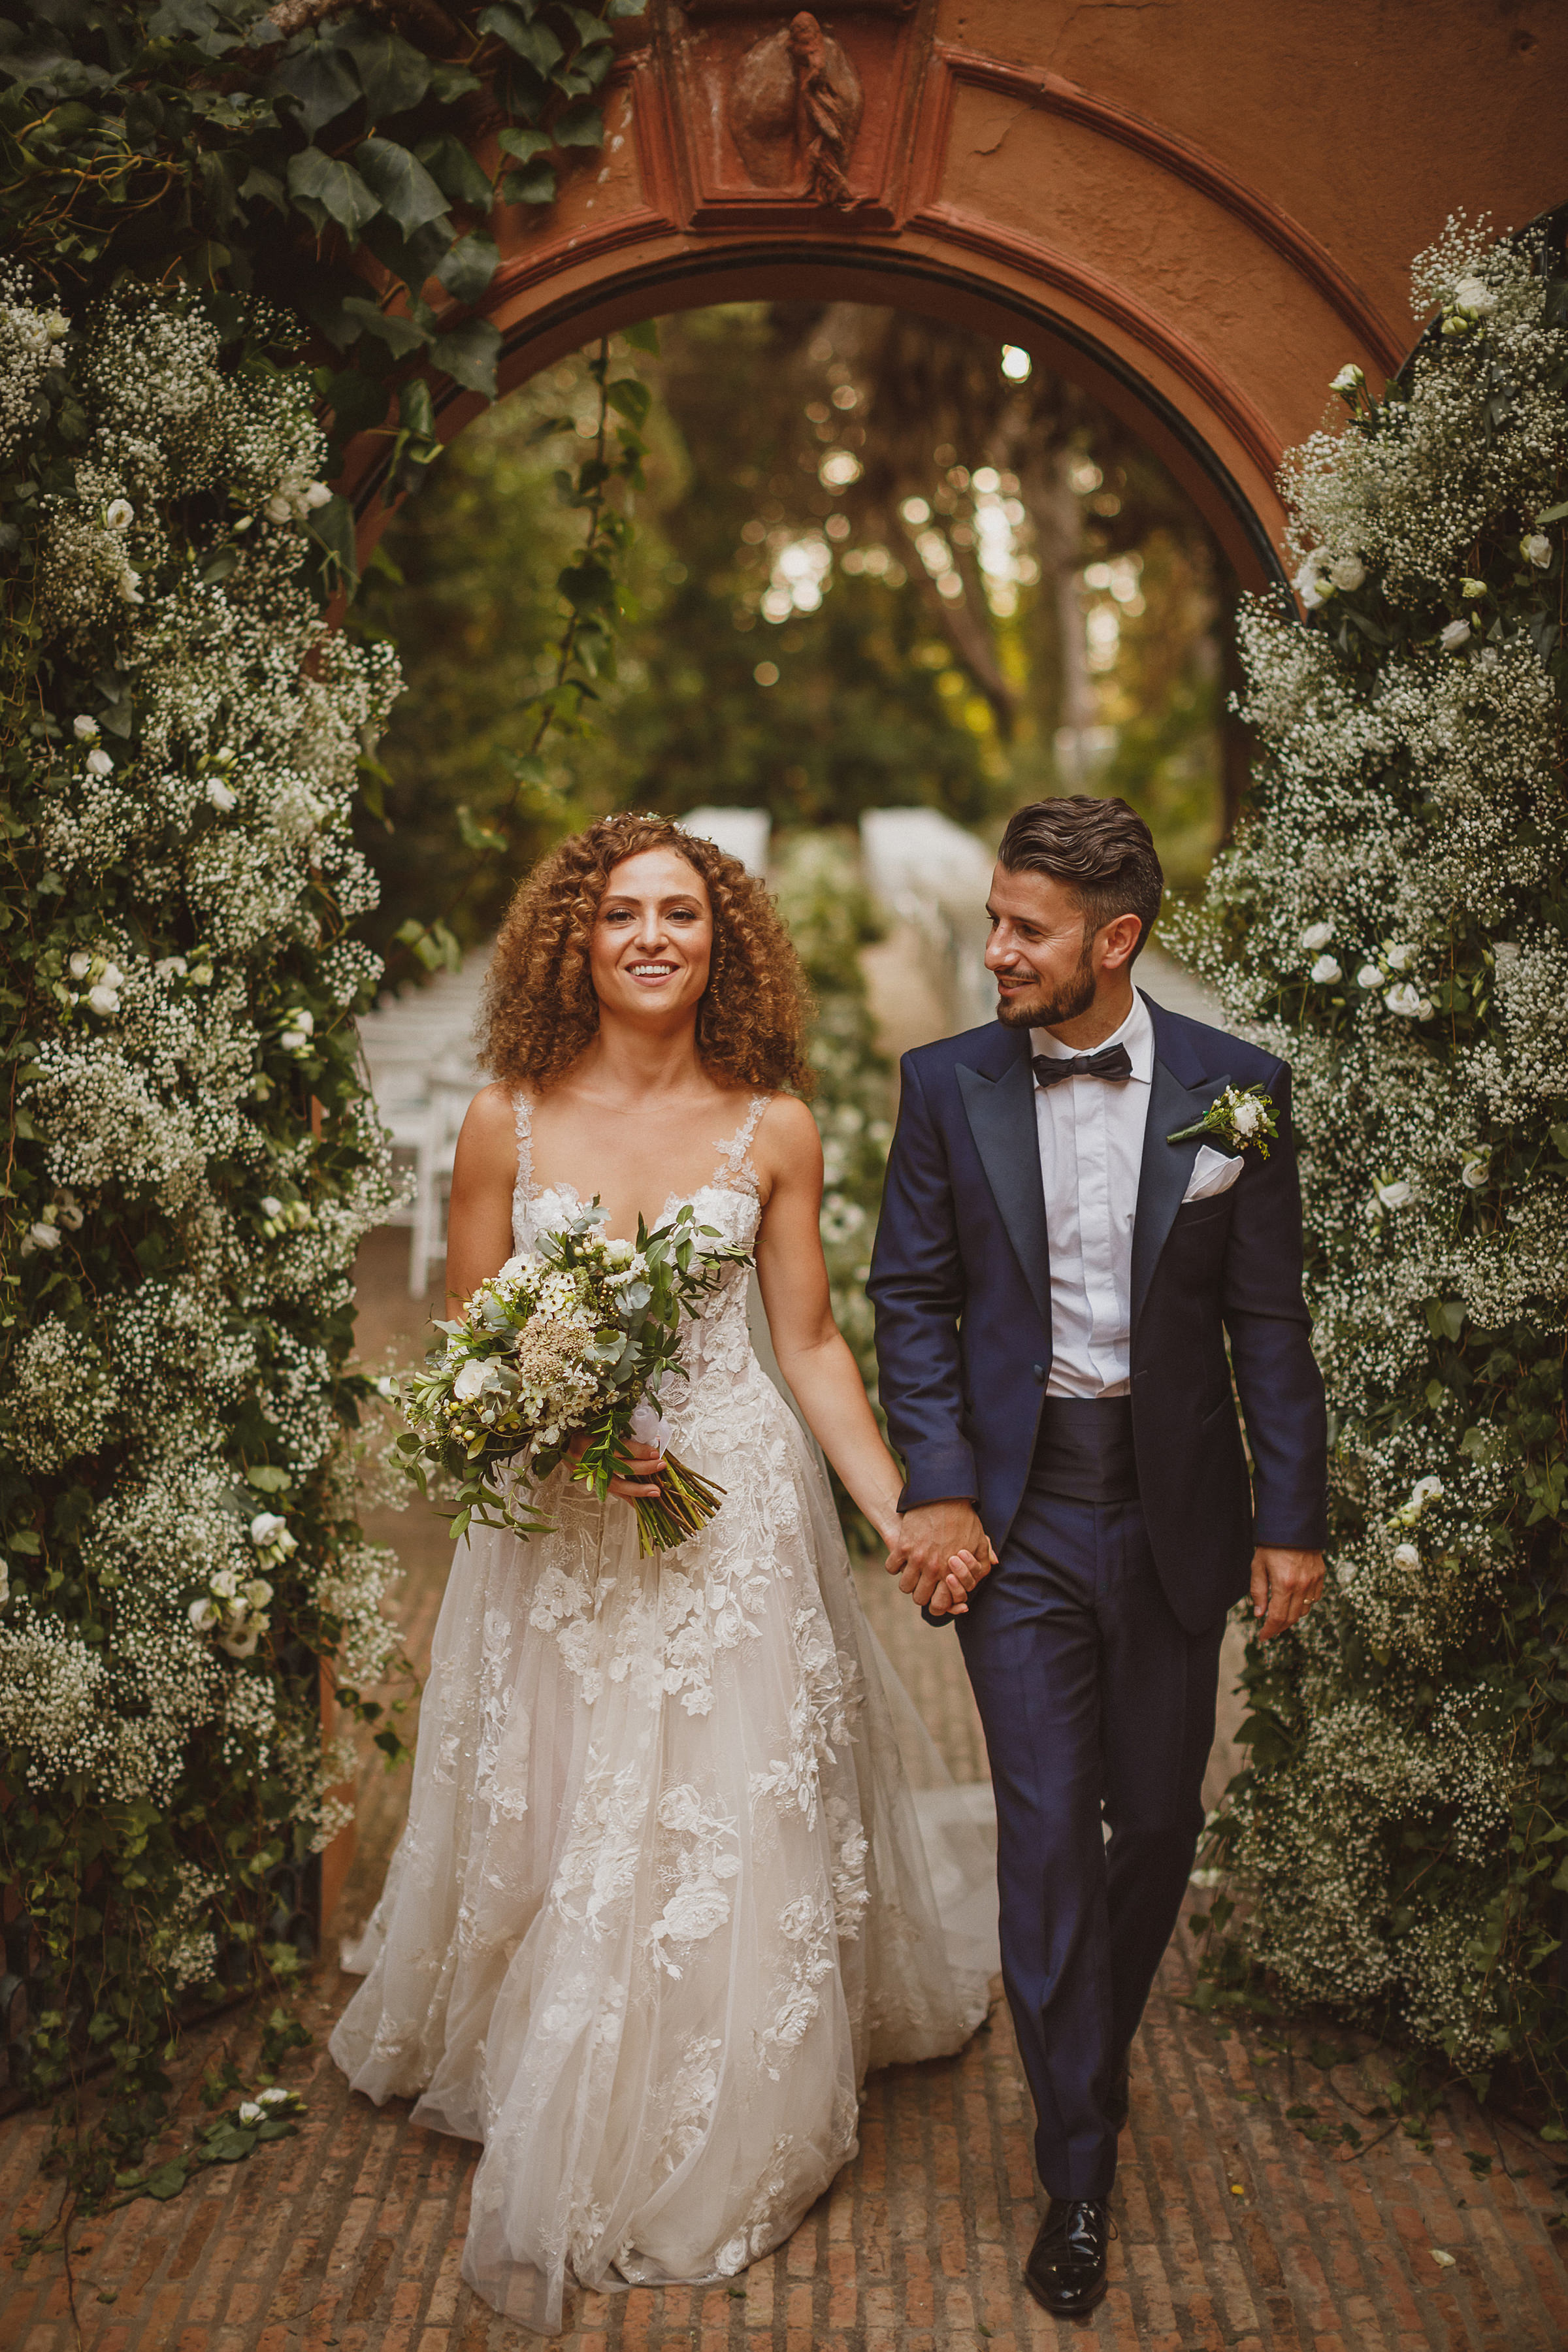 Couple walk through natural floral arbor - photo by Ed Peers Photography